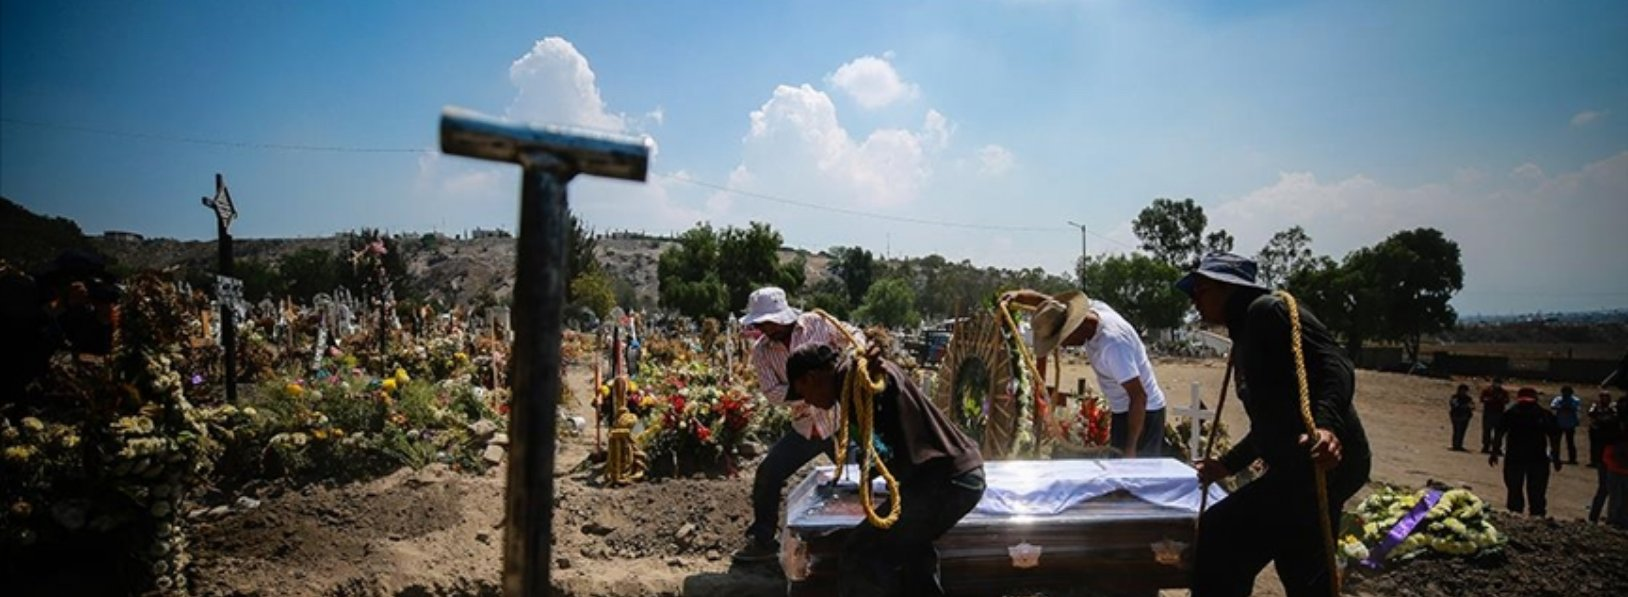 The number of deaths due to Covid-19 in Mexico exceeded 200 thousand.